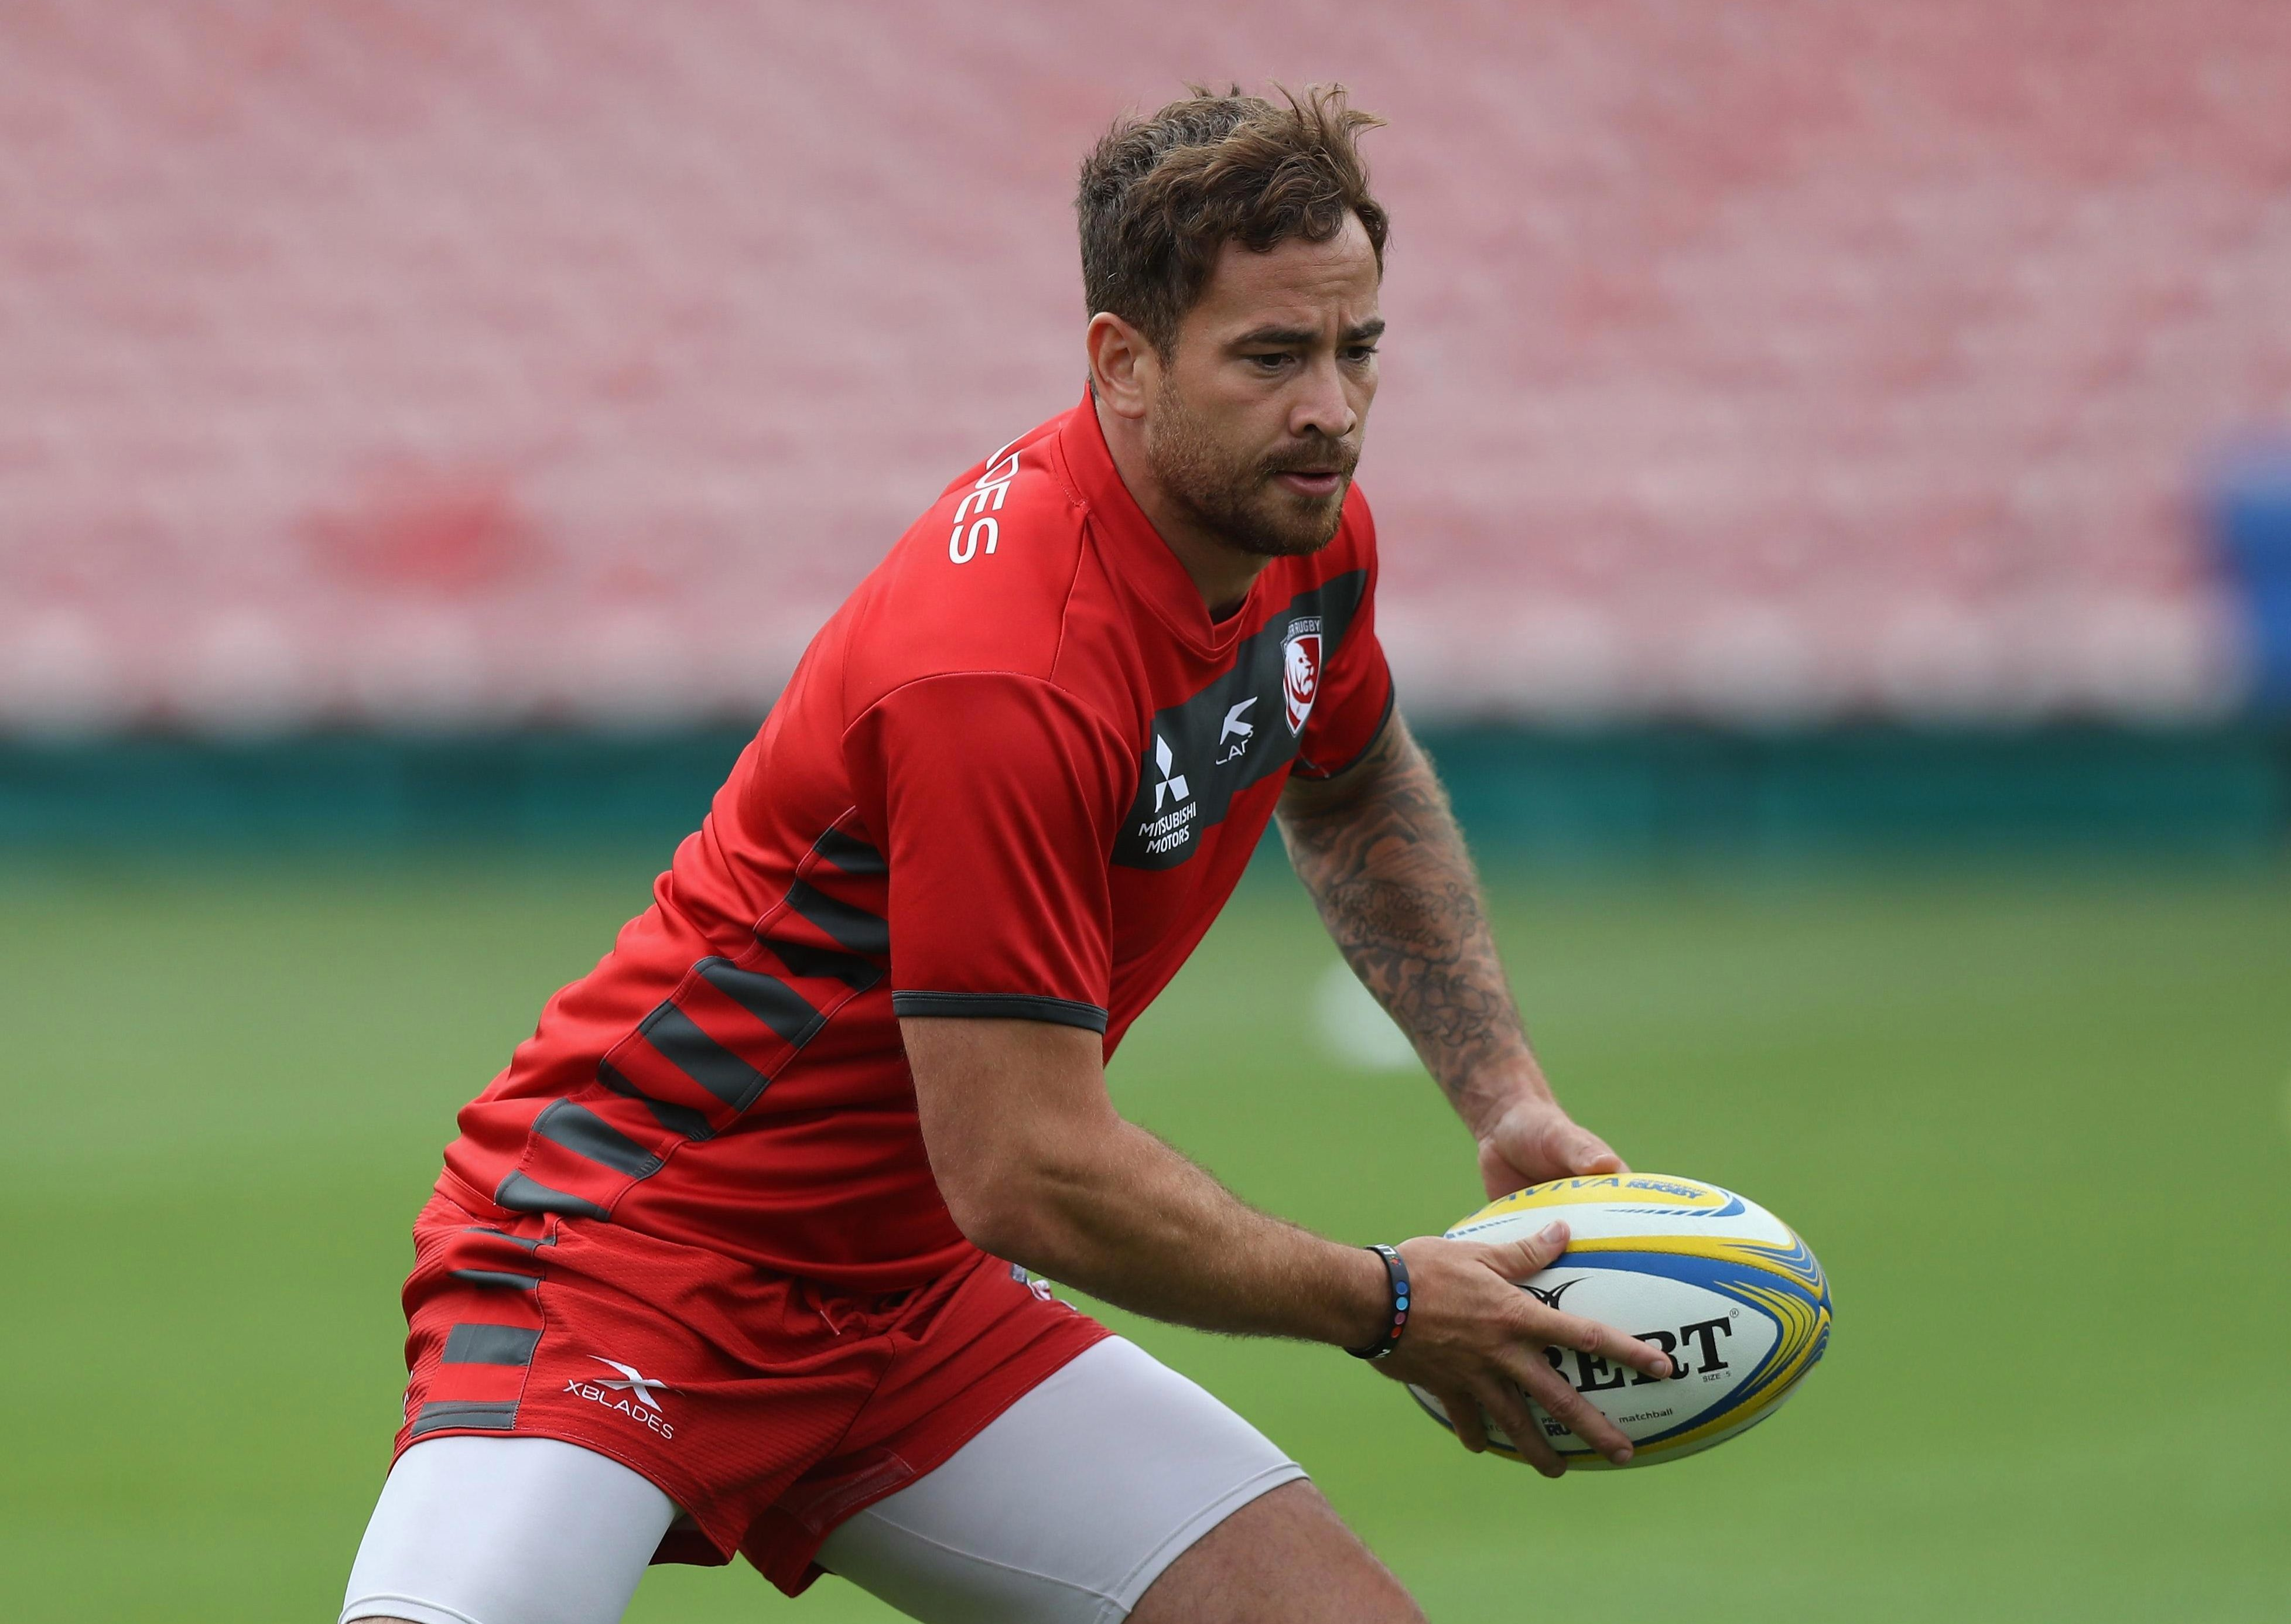 Jones is expected to be lenient on the Gloucester star